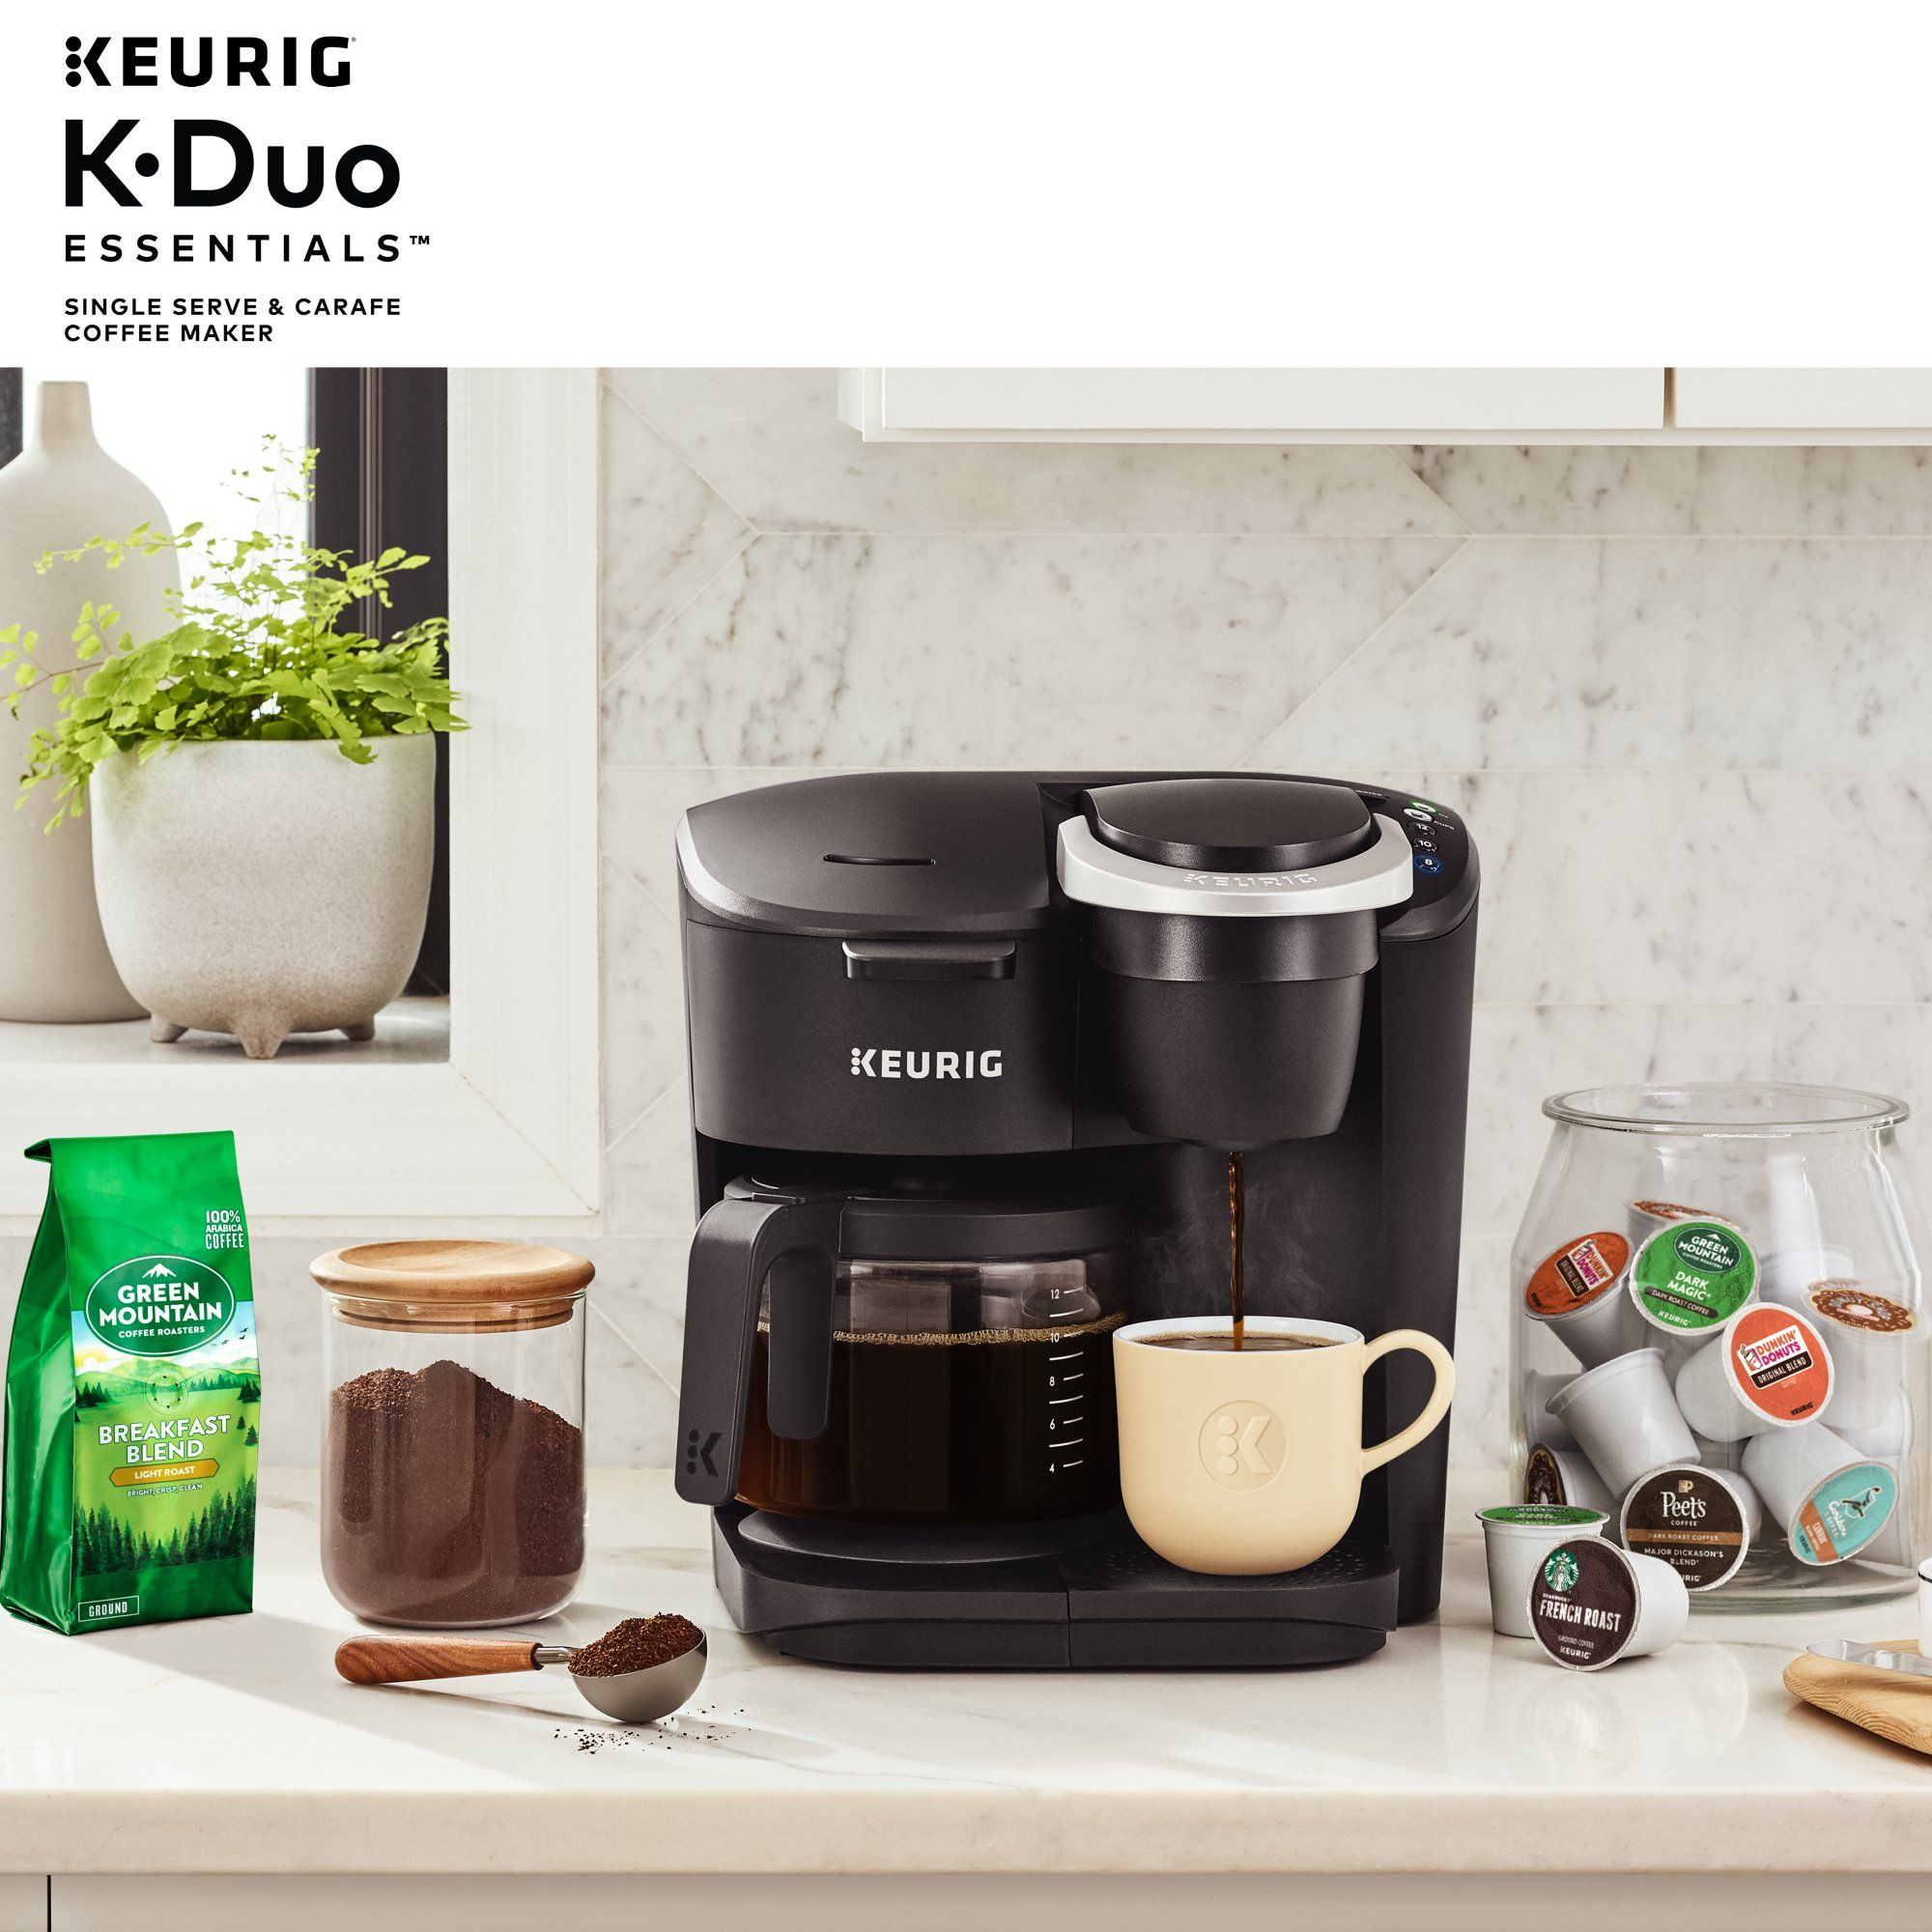 Keurig KDuo Essentials Coffee Maker, with Single Serve K